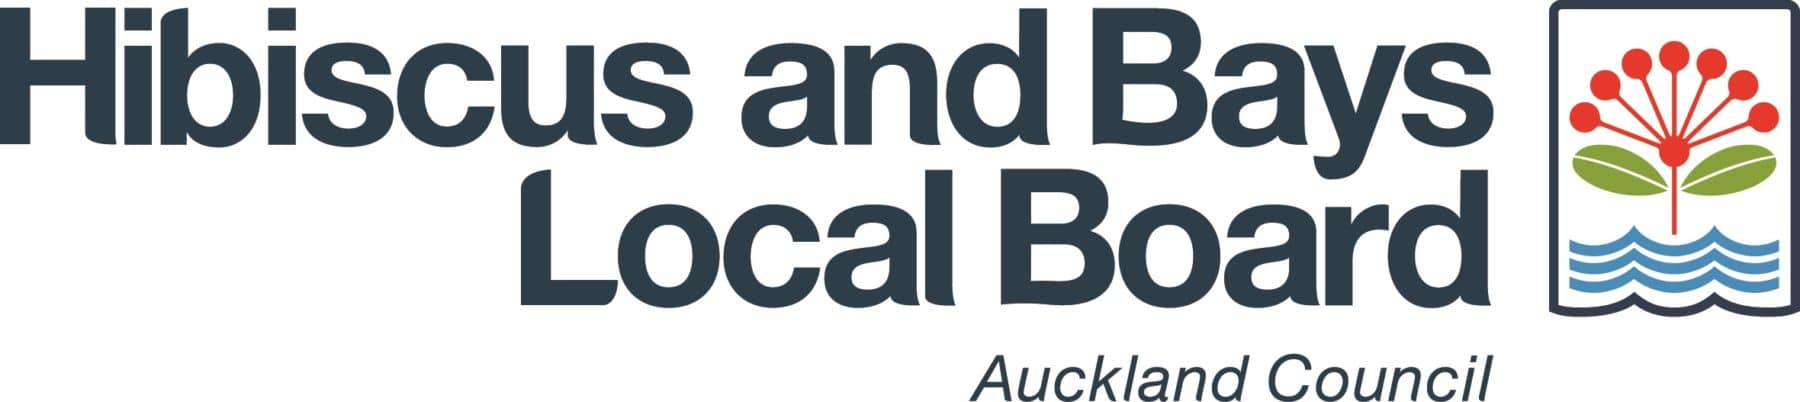 Hibiscus and Bays Logo